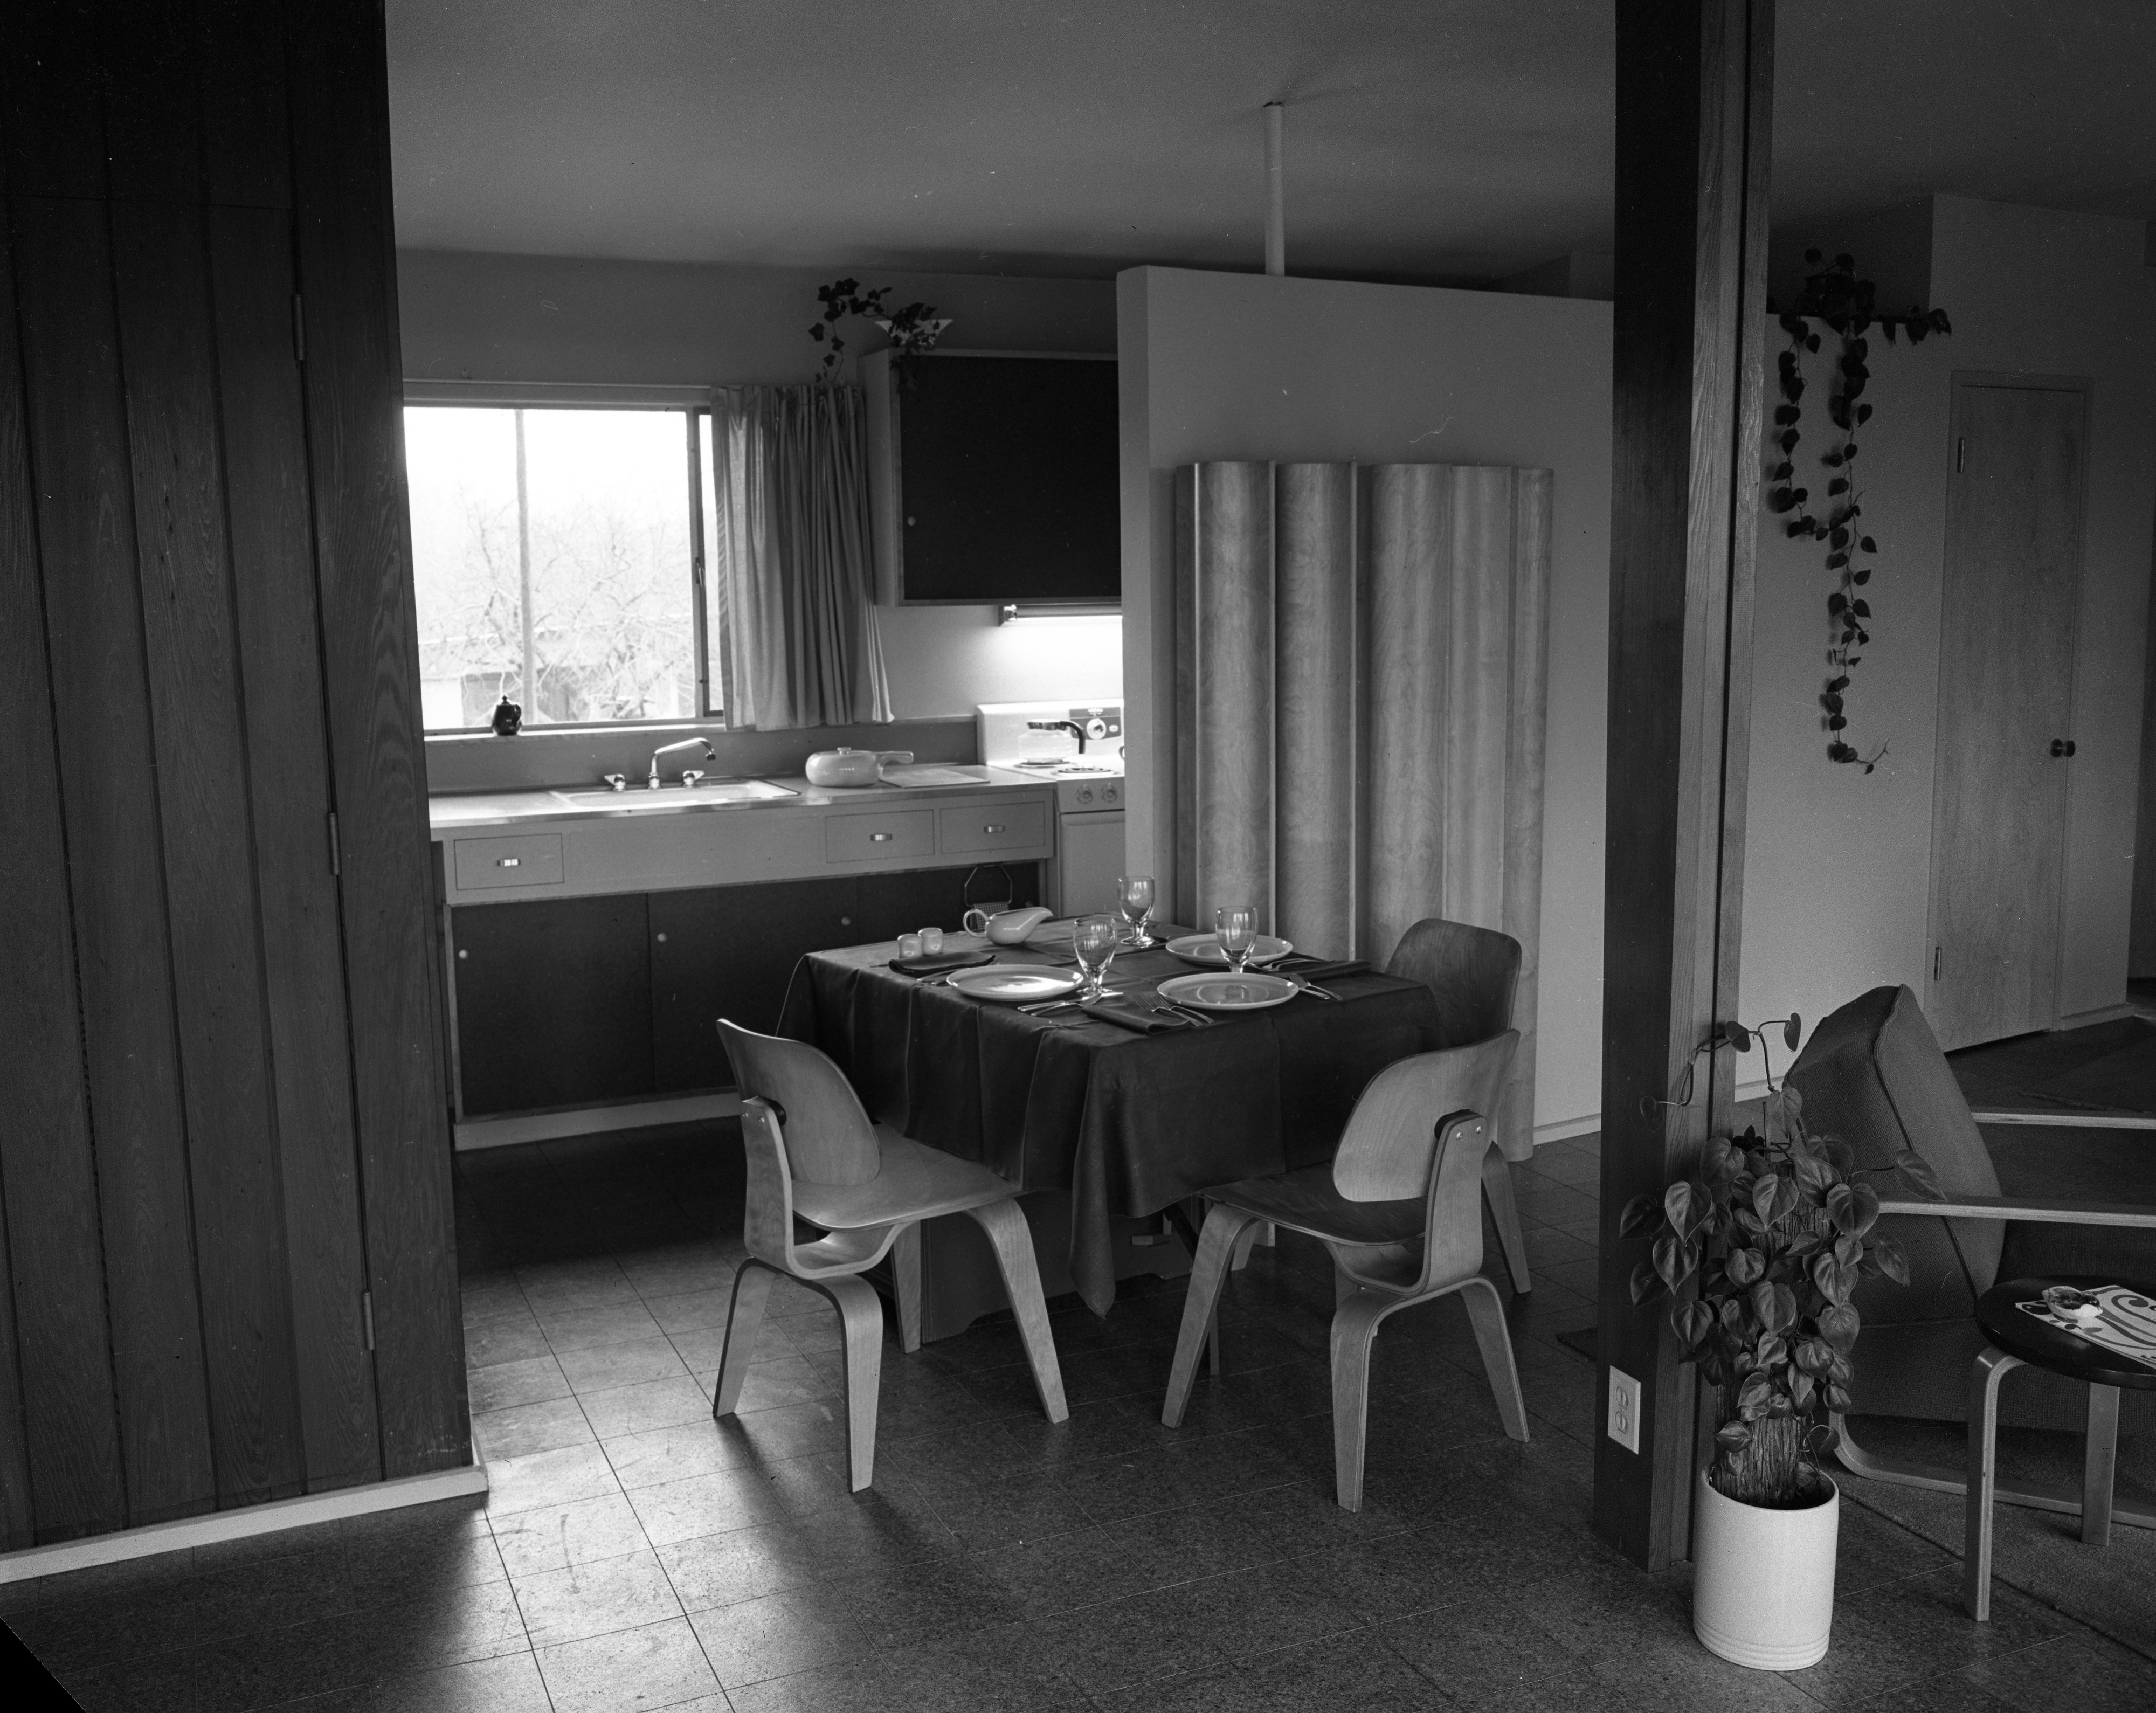 Kitchen/Dining Area At Architect Richard M. Robinson Home On Huron View Blvd., 1953 image